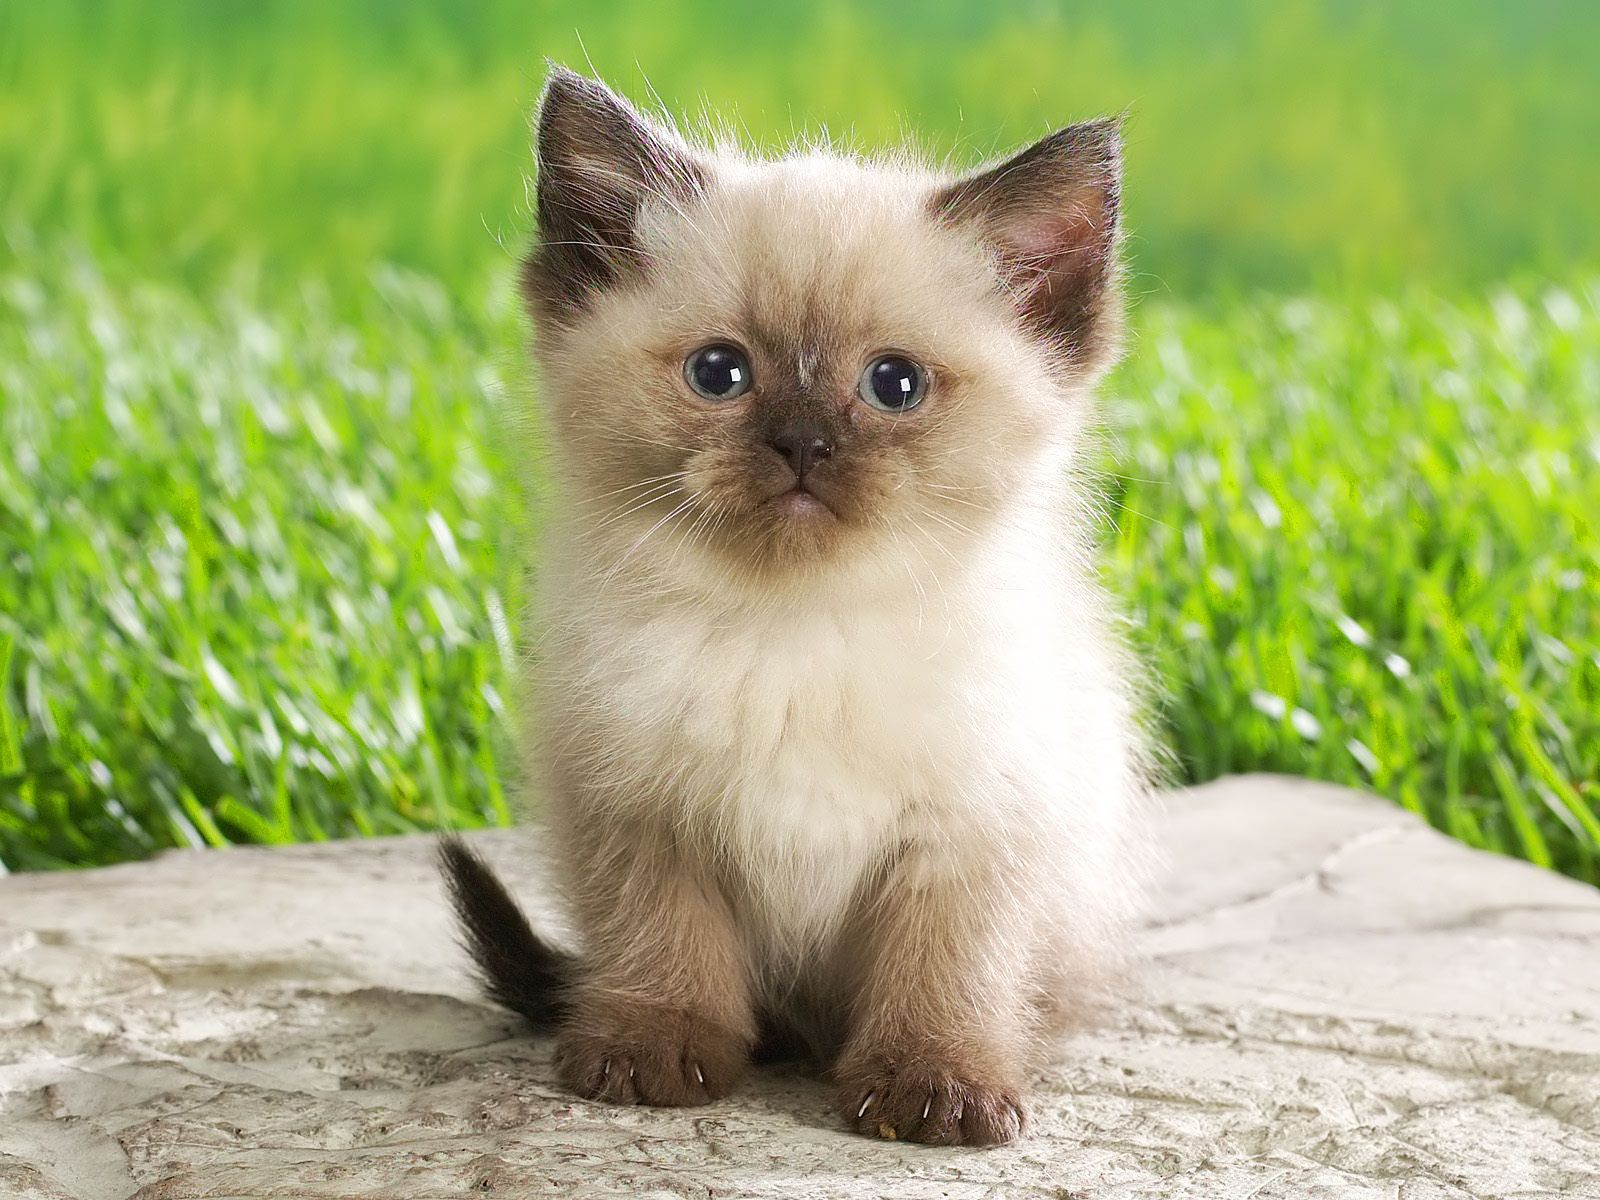 Pictures Of Just Cats Kittens Cutest Beautiful Cats Himalayan Kitten